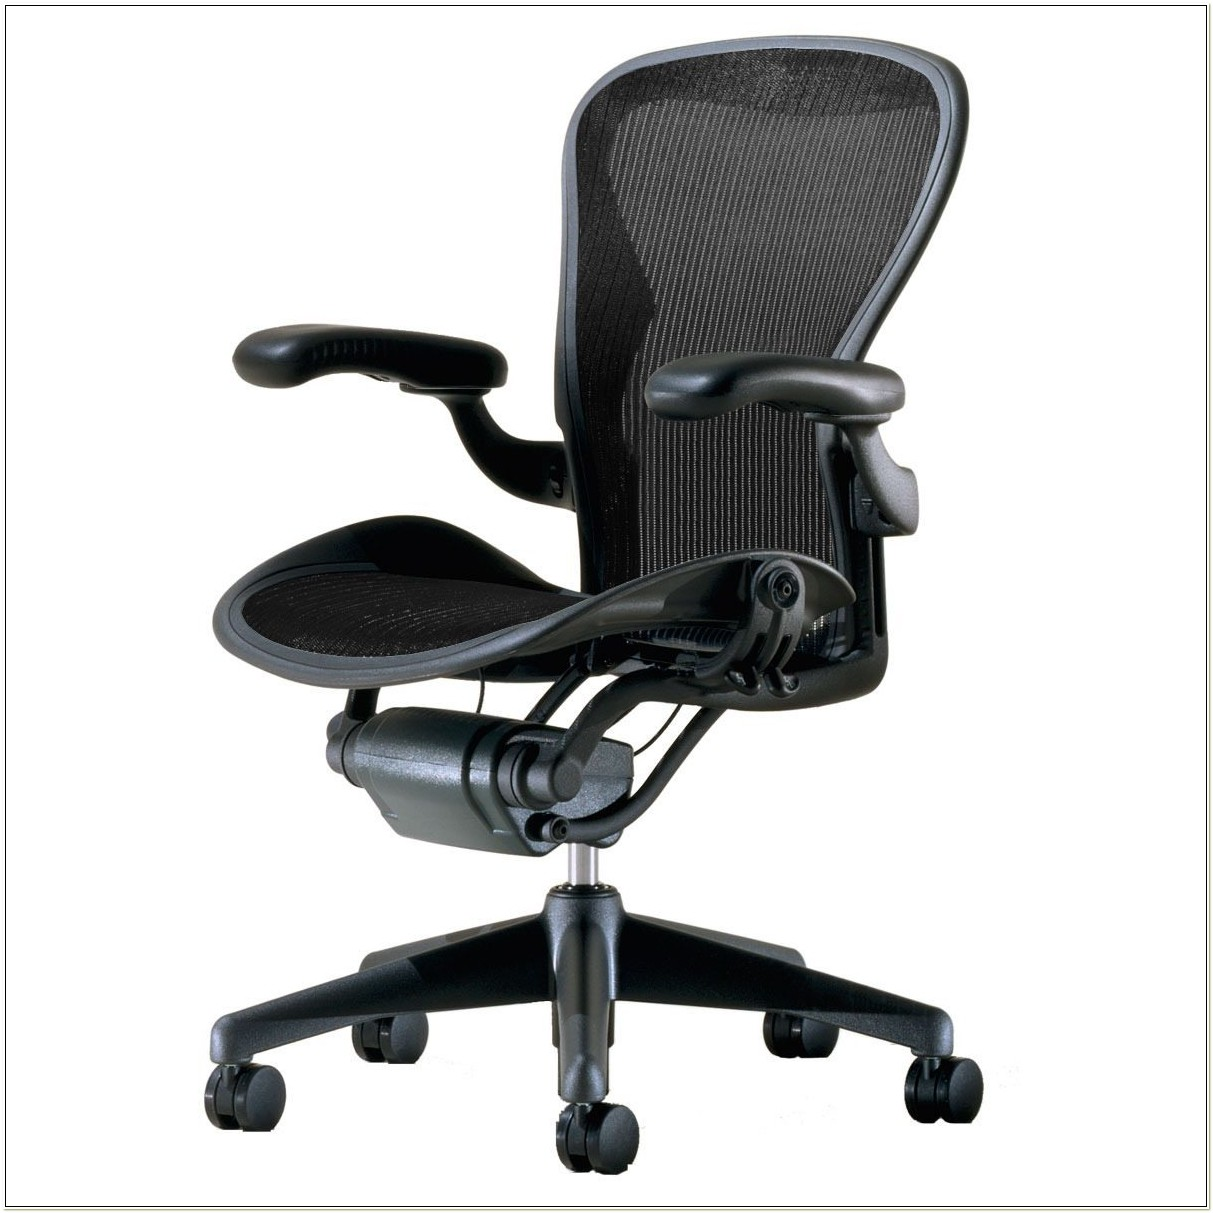 Top Rated Ergonomic Office Chairs